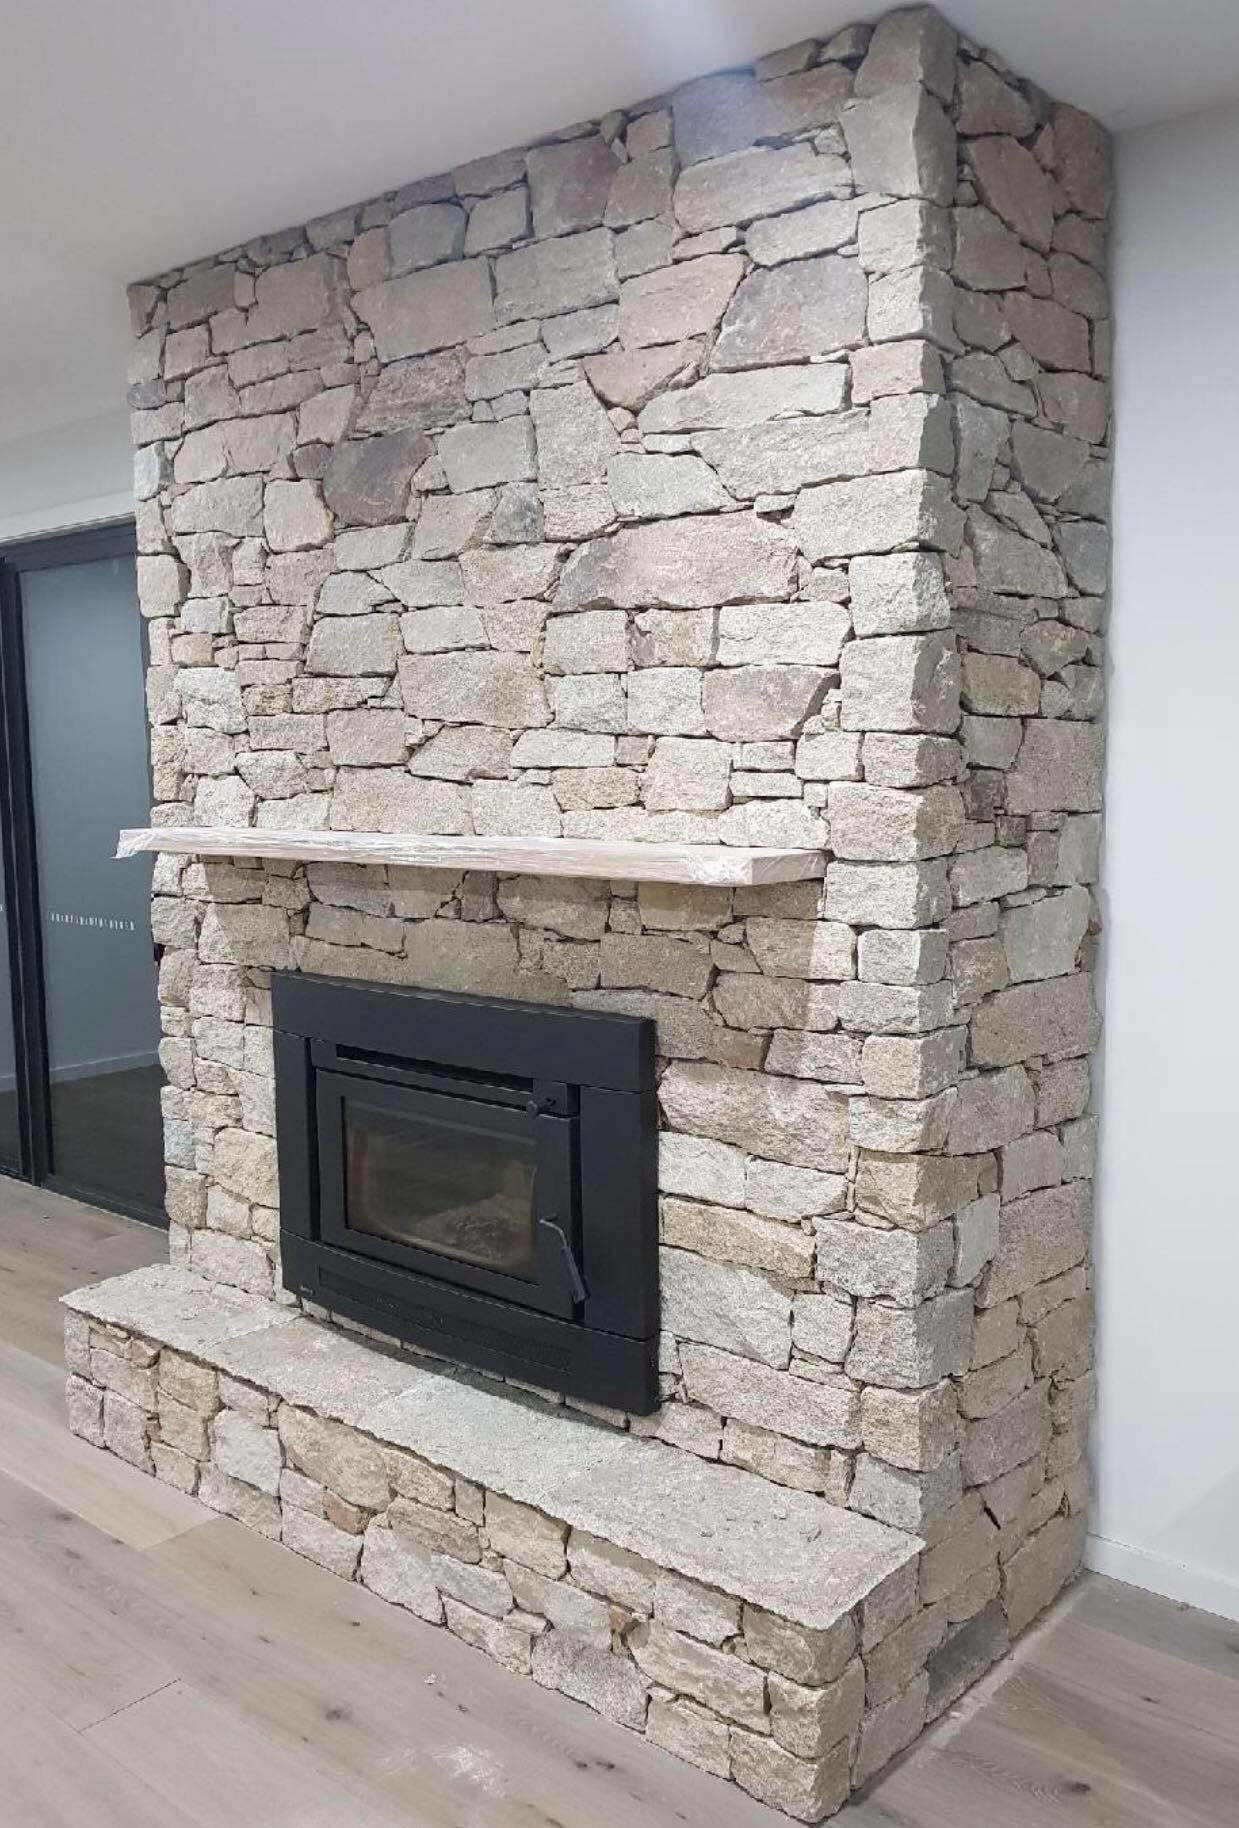 Fireplace build with Franklin irregular stone cladding seen in a stone house